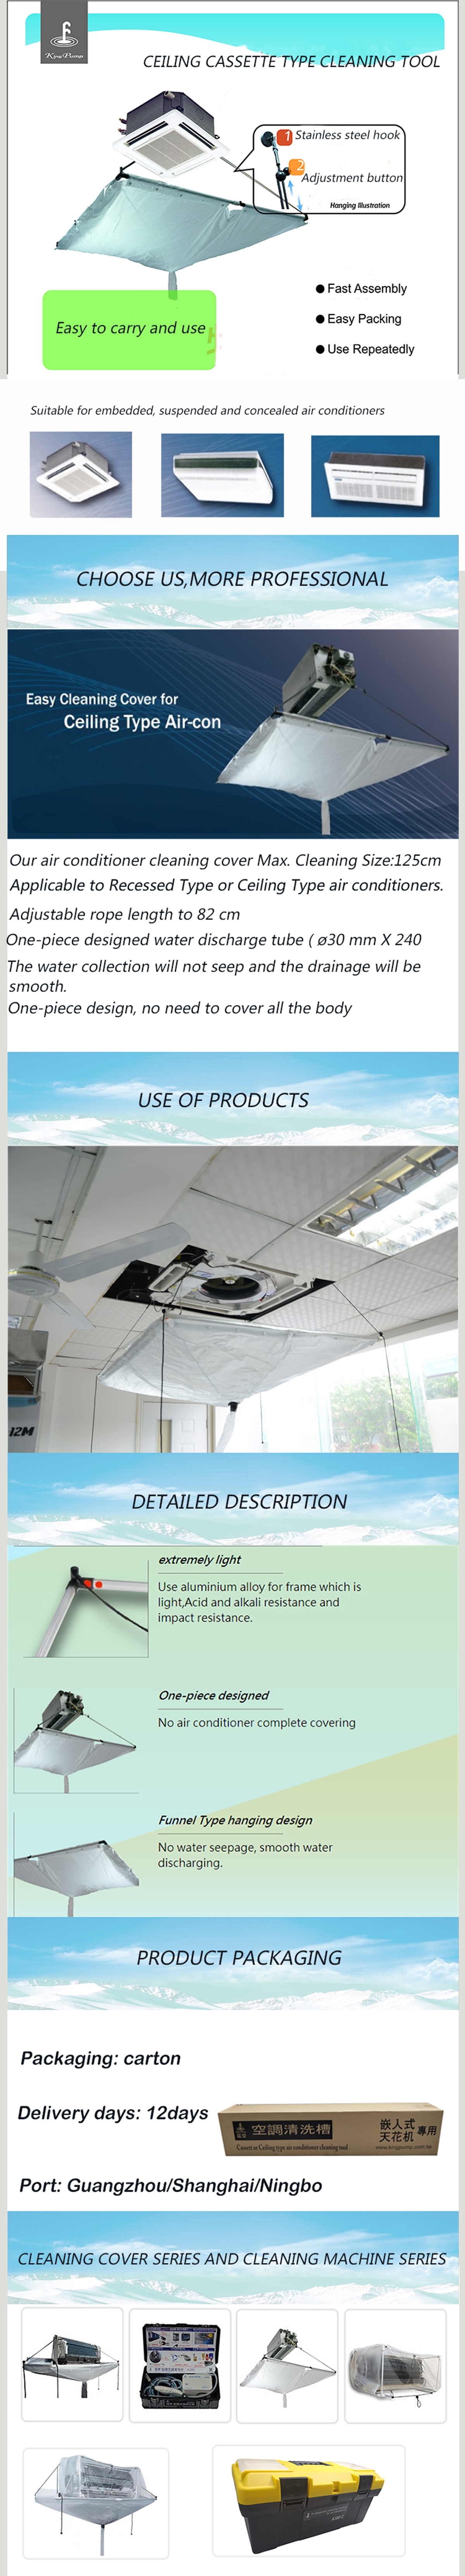 King Pump quickly assembled cassette or ceiling type professional air conditioner/conditioning cleaning cover tools